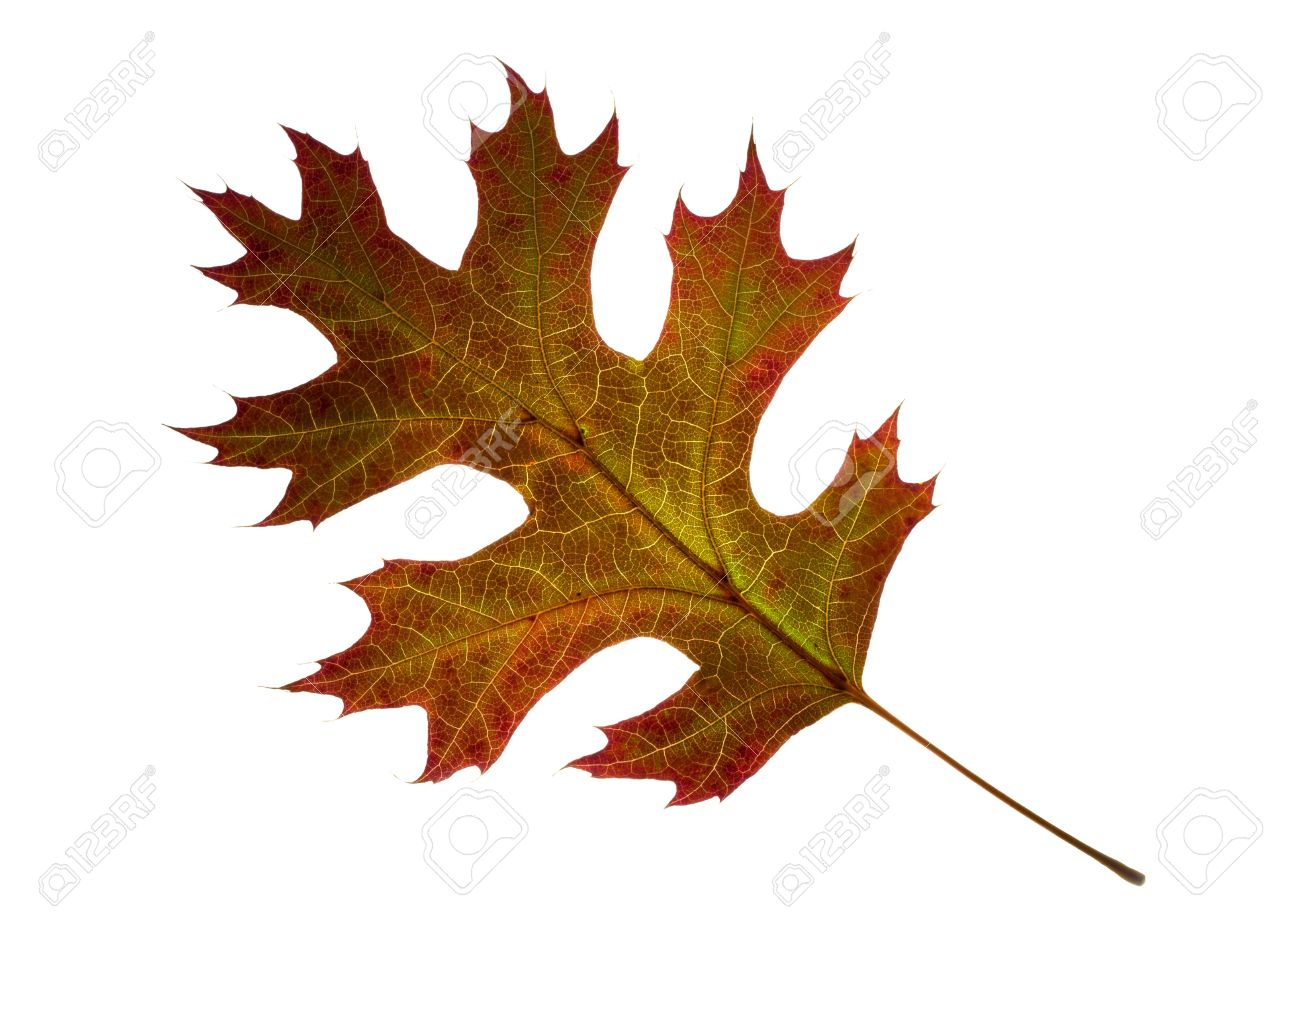 Close Up Of Autumn Northern Pin Oak Leaf On White Background Stock Photo Picture And Royalty Free Image Image 16460724